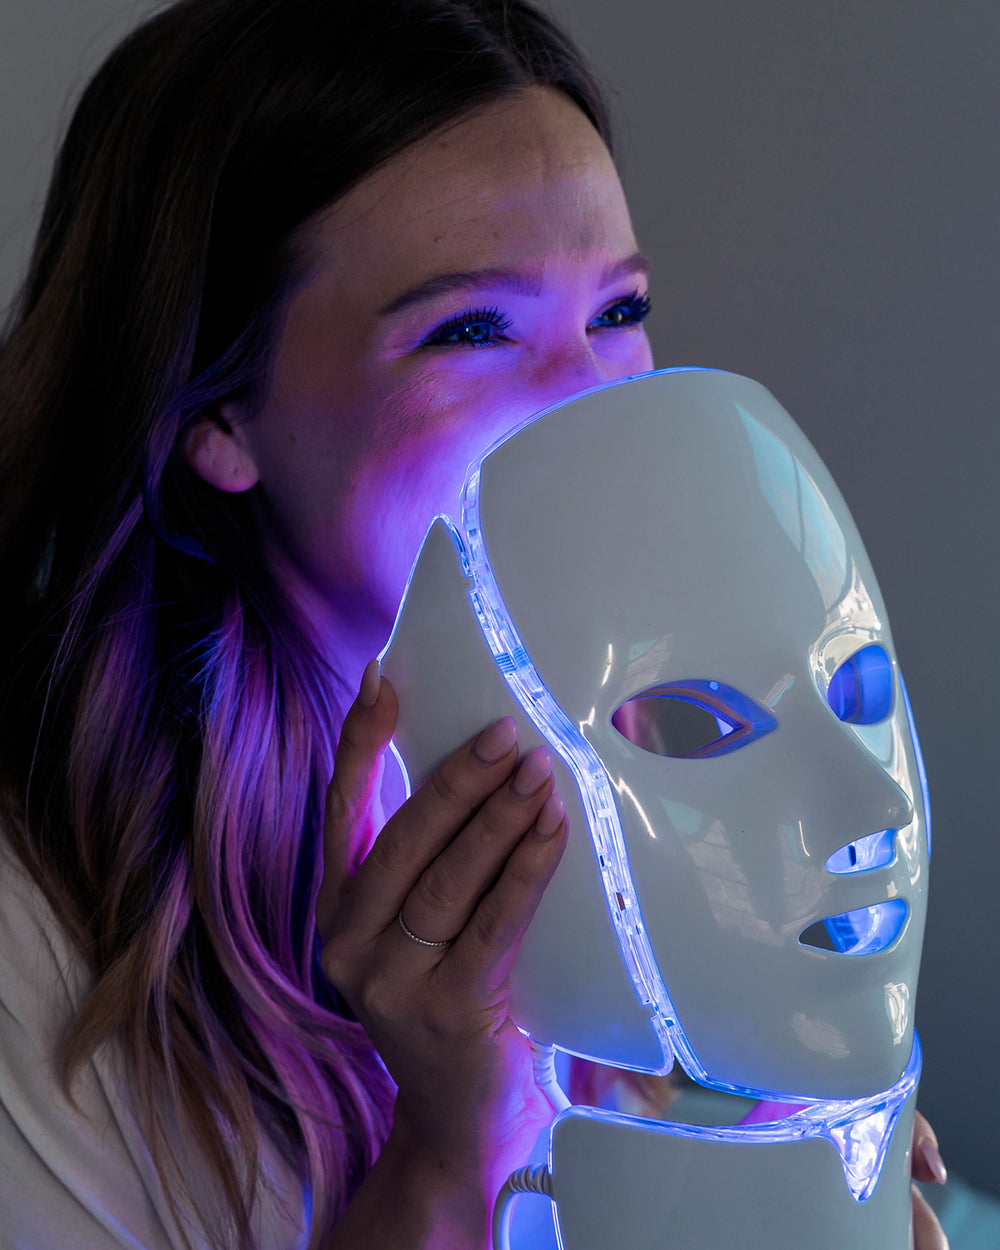 Best-Blue-Light-Therapy-Mask-DermaLight-Derma-Light